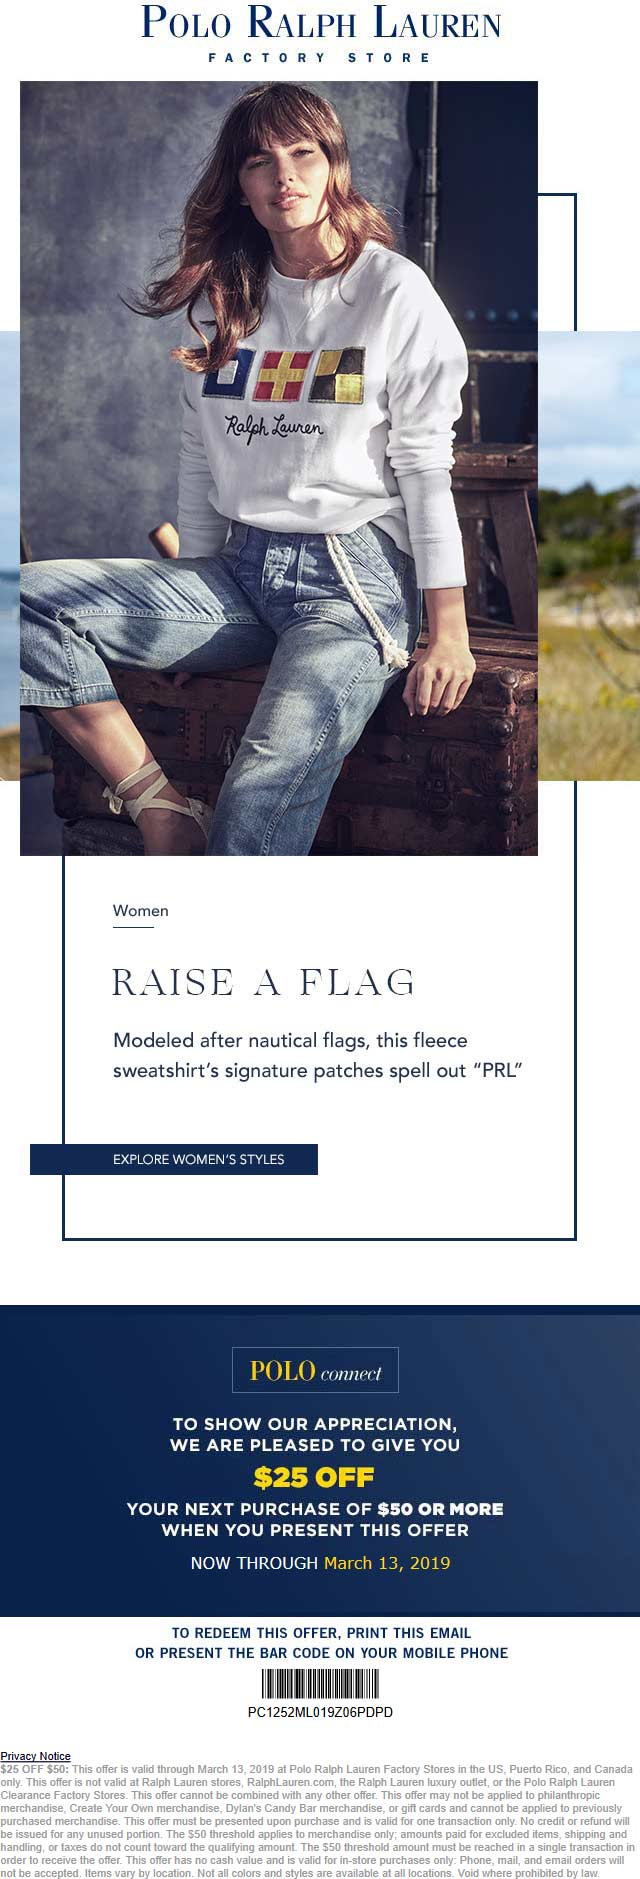 Polo Ralph Lauren Factory Coupon August 2019 $25 off $50 at Polo Ralph Lauren Factory